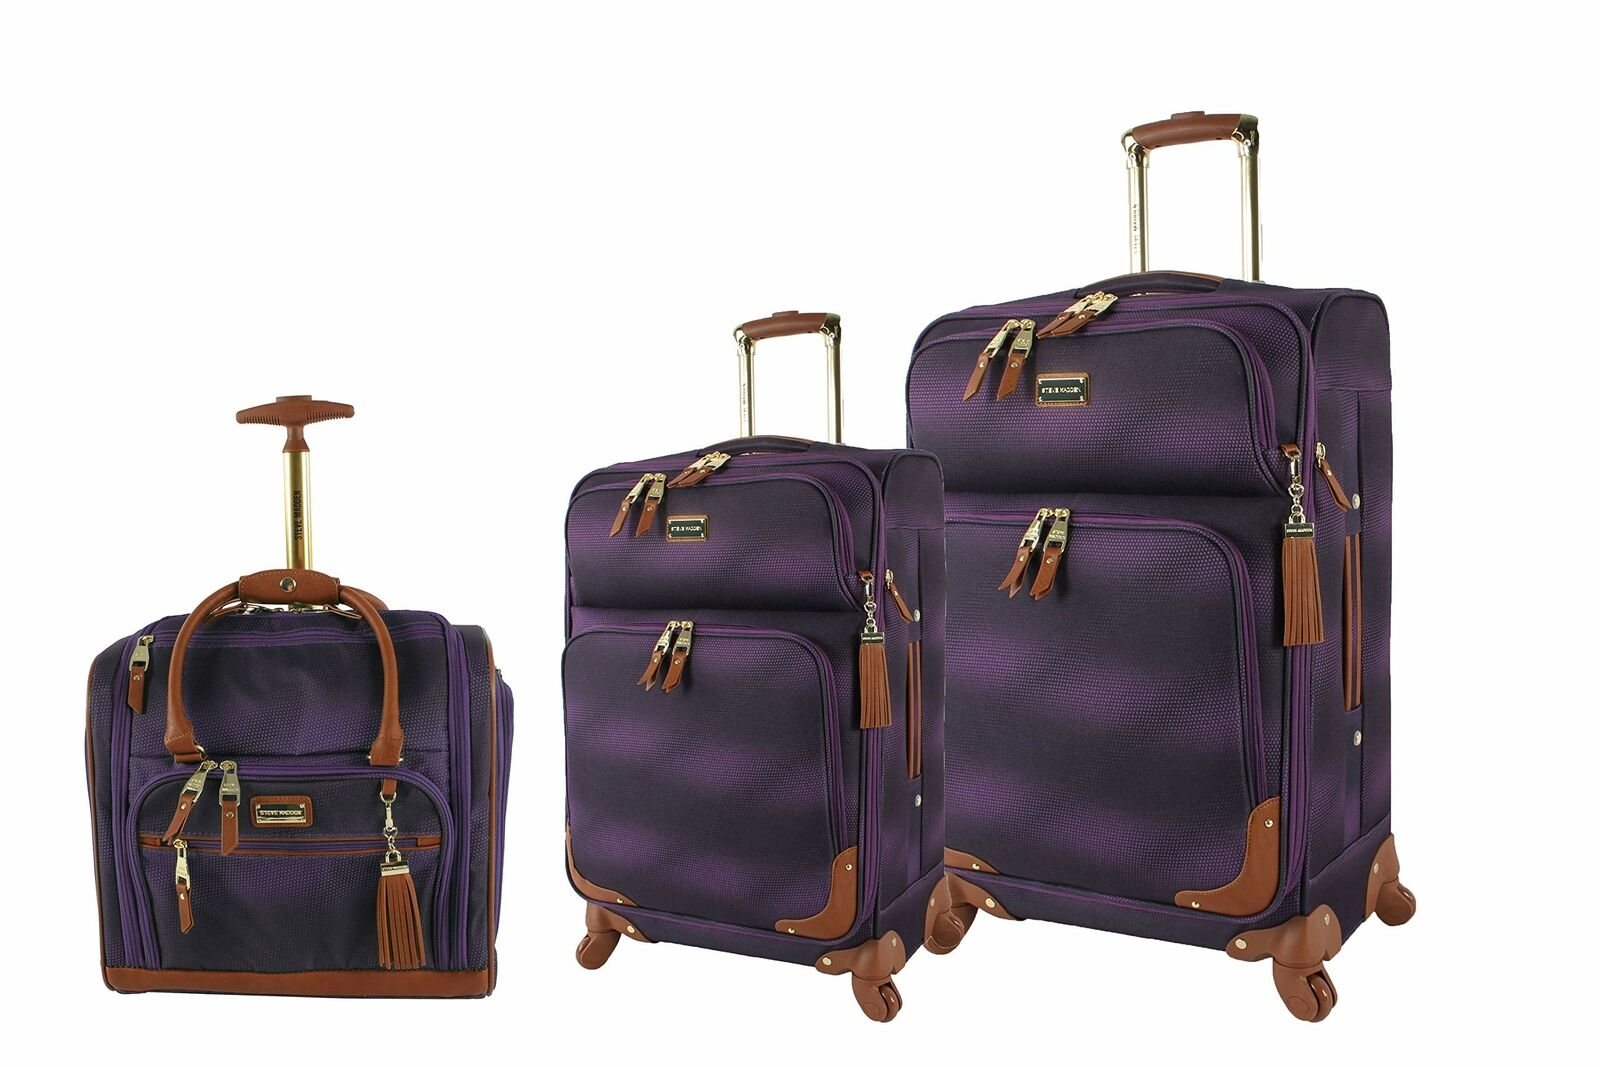 Steve Madden Cubic Luggage 3 Piece Hardside Suitcase With Spinner Wheels 10487724